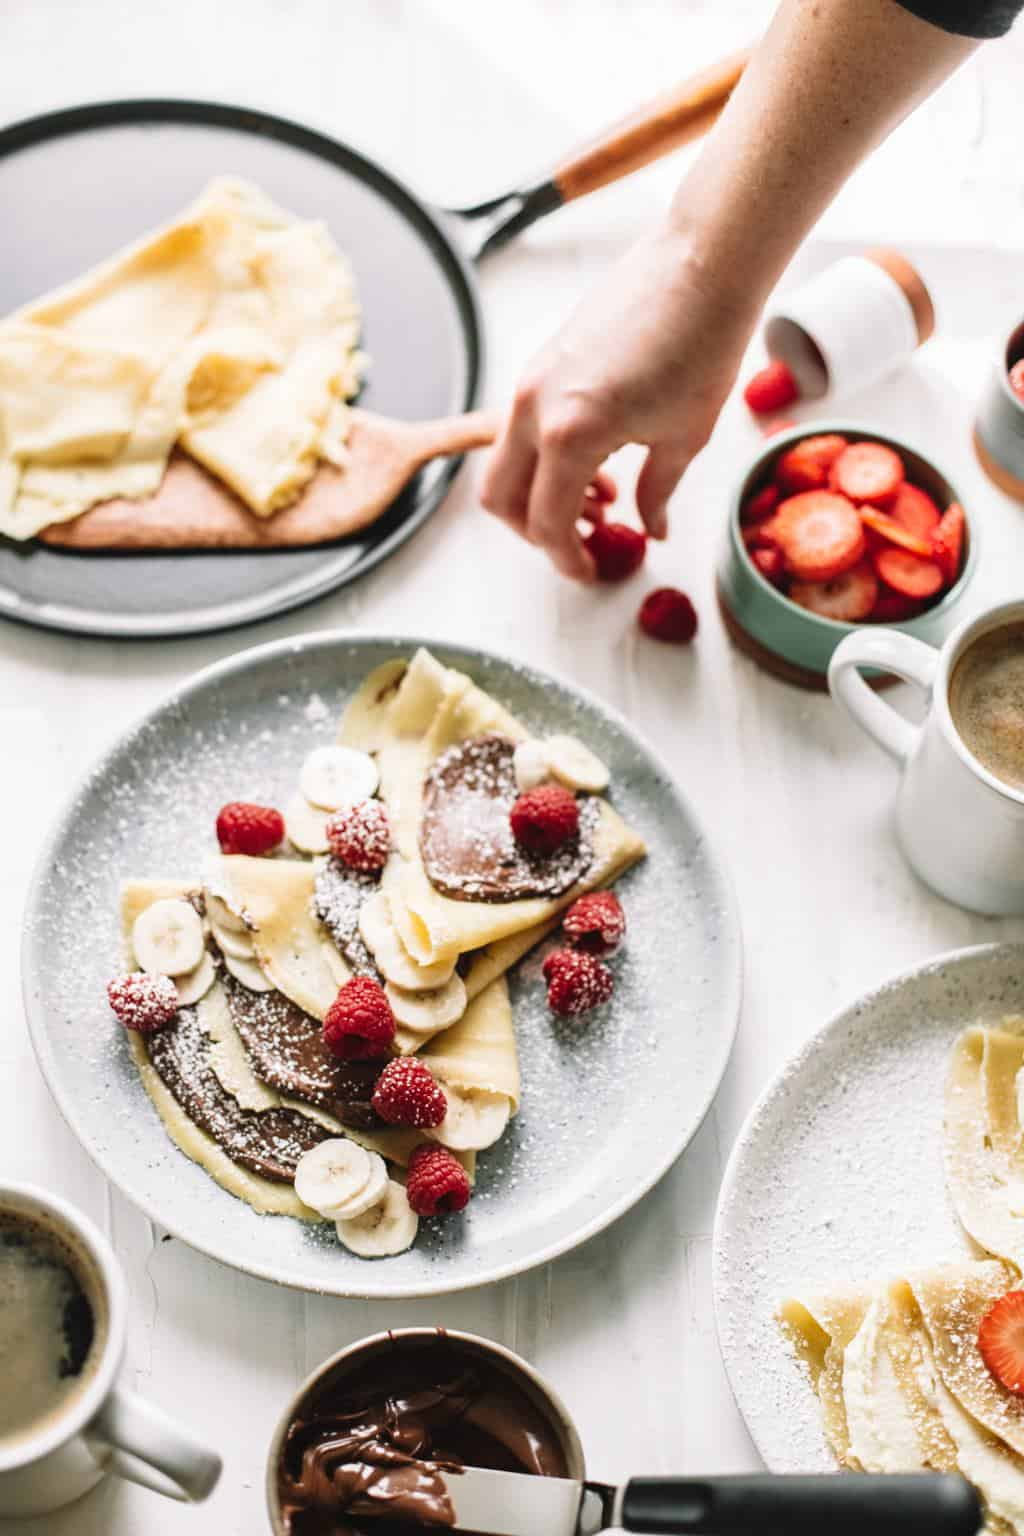 A plate full of crepes with sliced bananas, raspberries, and Nutella.